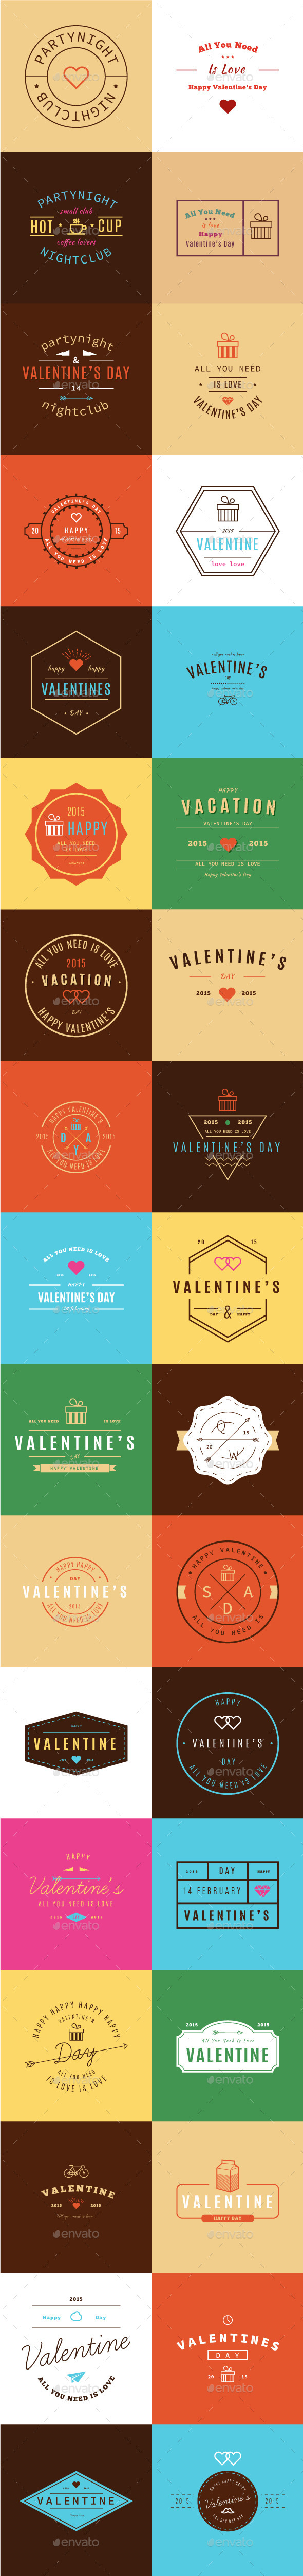 GraphicRiver Happy Valentine s Day Retro Vintage Insigns 9825336